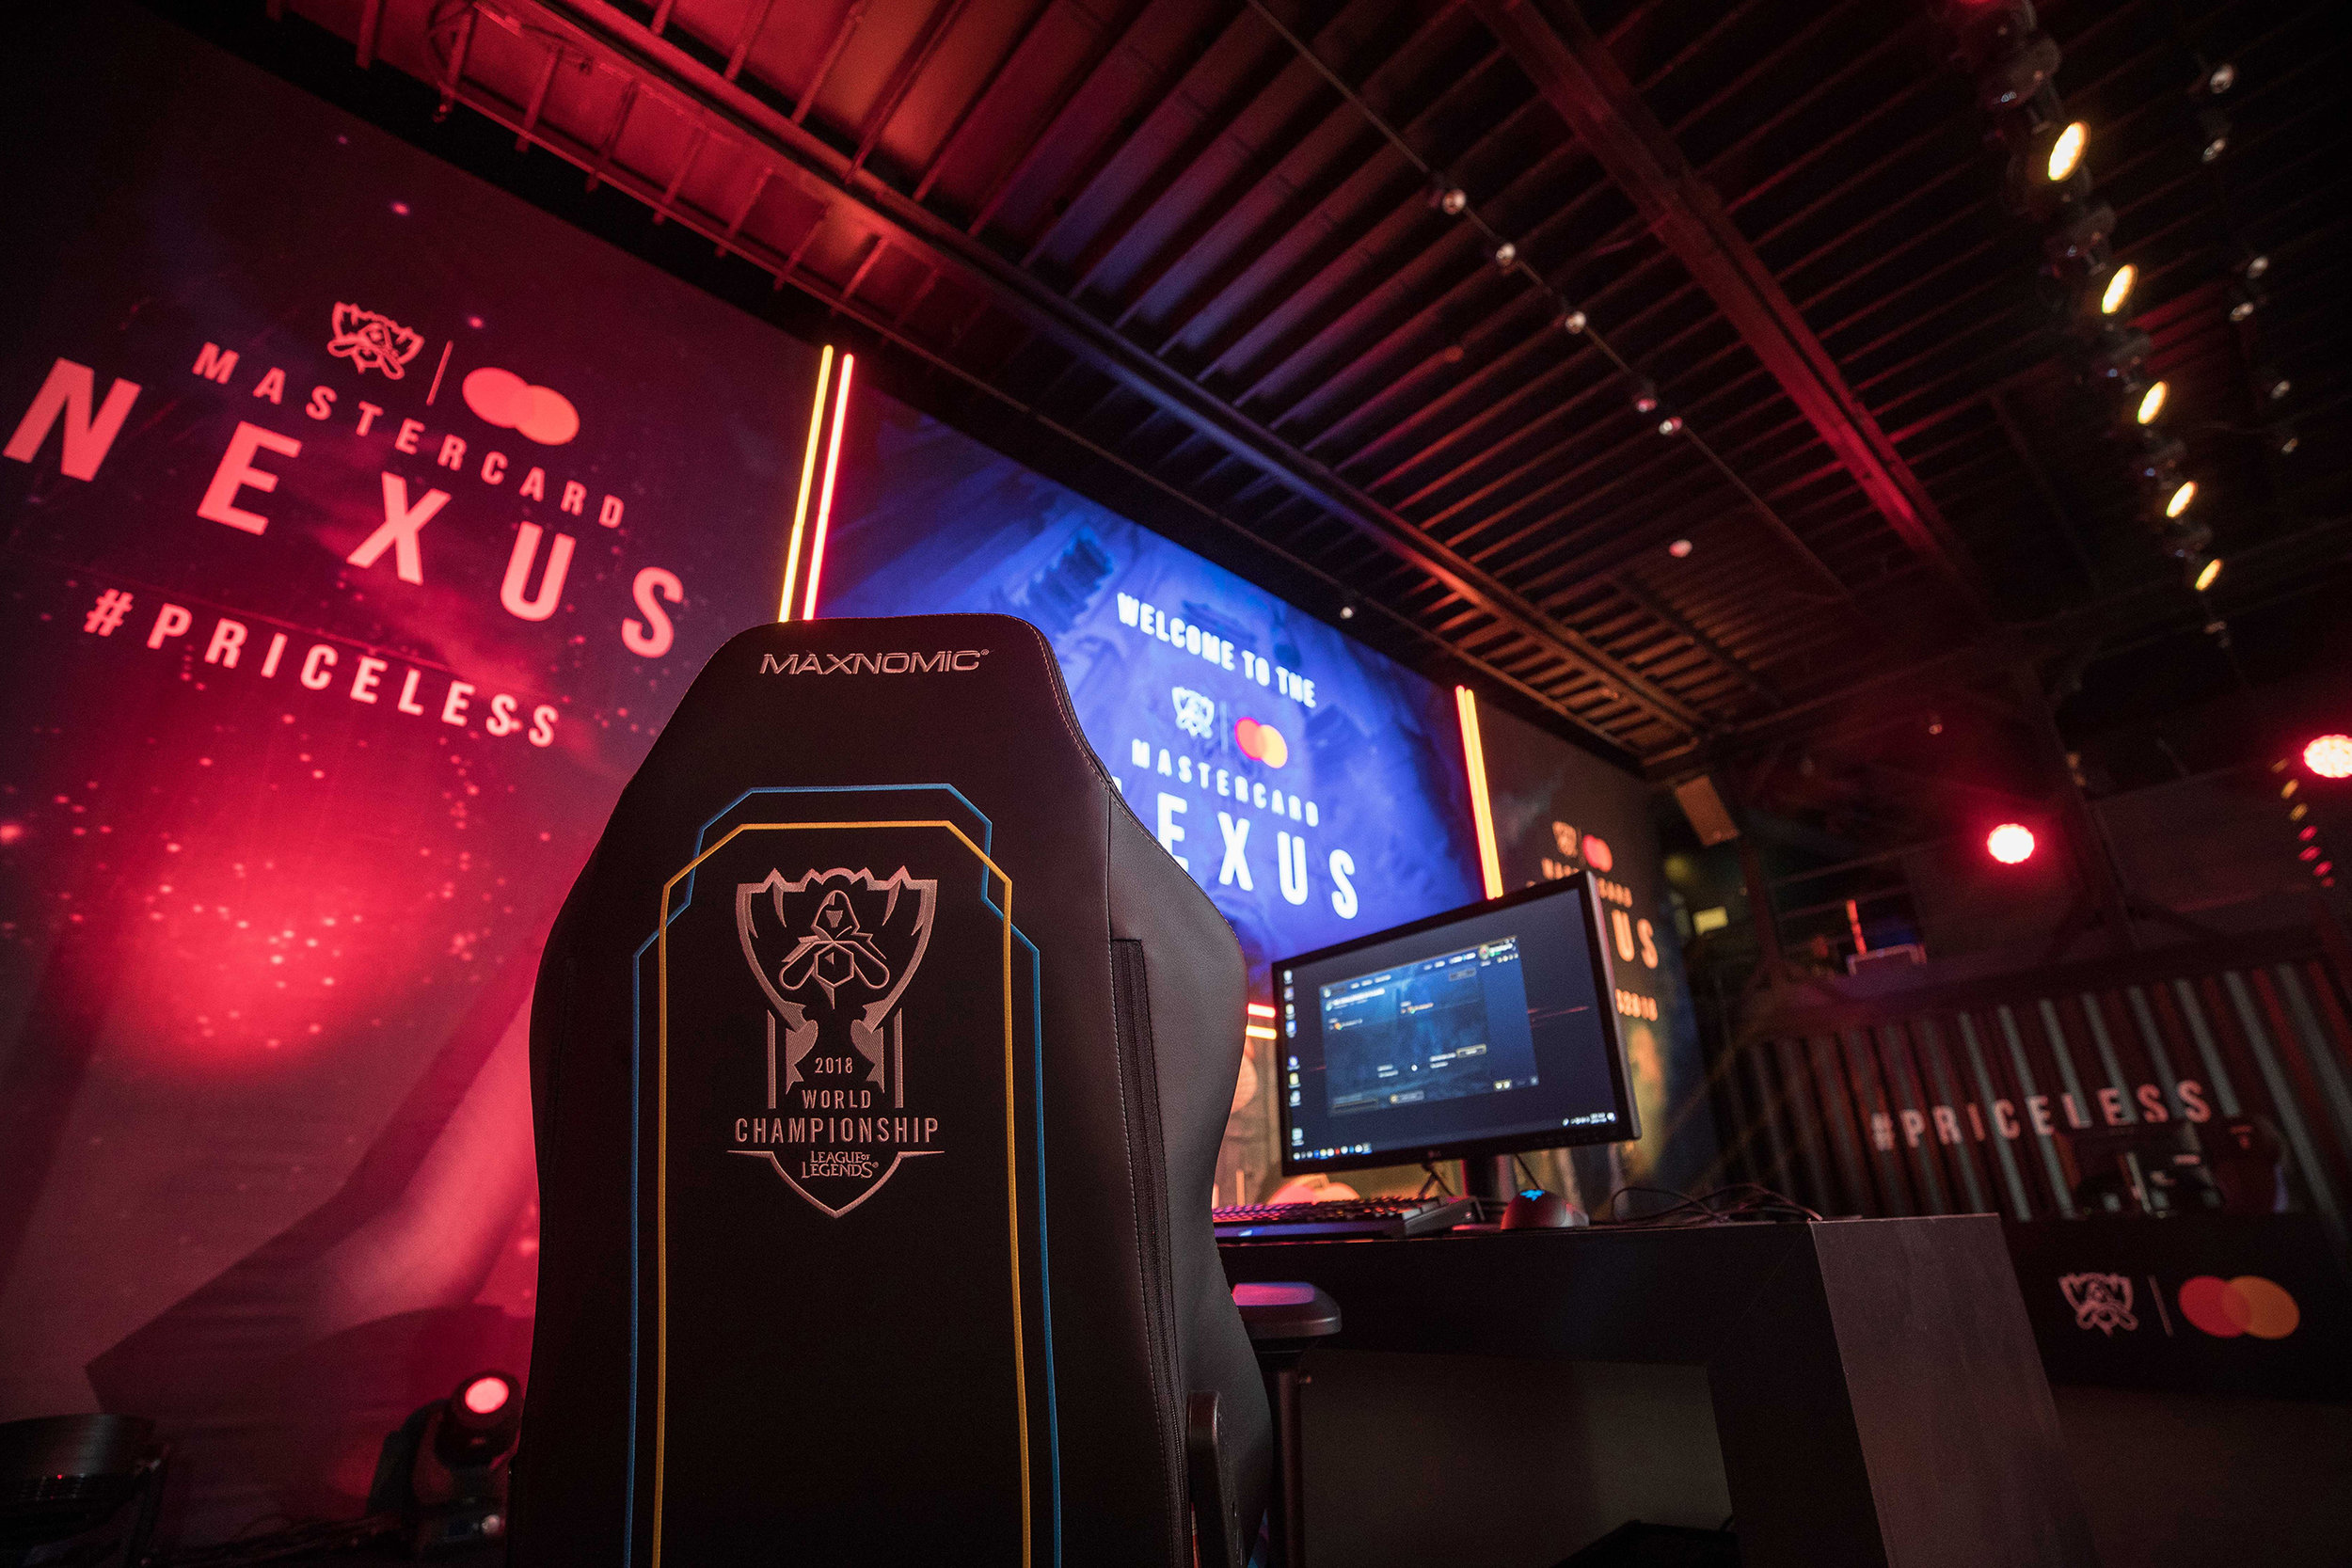 The stage before fan competition at Mastercard Nexus during the 2018 League of Legends World Championship on November 2, 2018 in Incheon, South Korea.  Photo by Hannah Smith/ESPAT Media for Mastercard